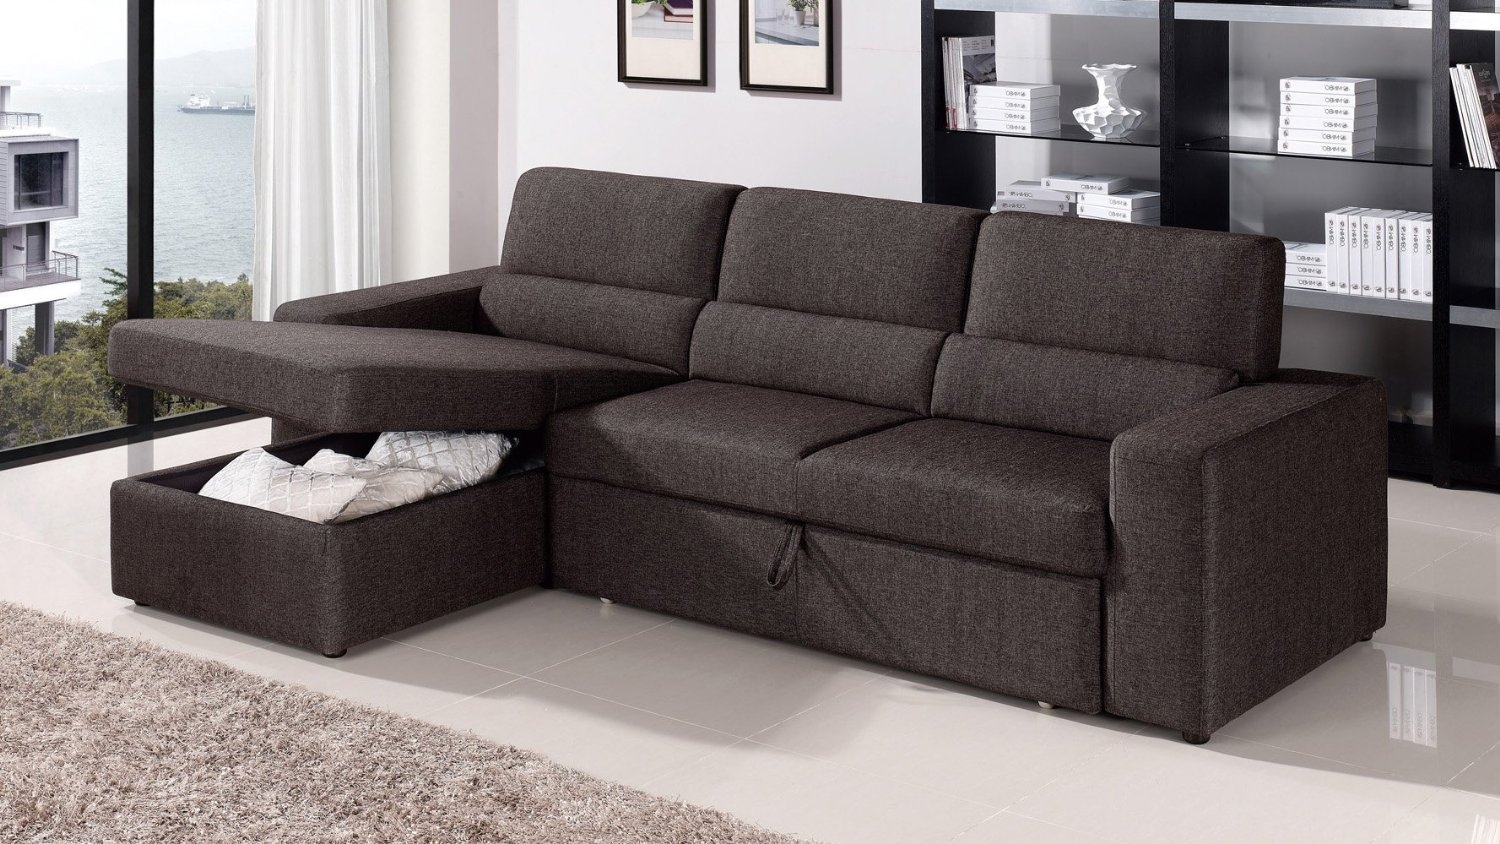 Beeindruckend Big Sofa Microfaser Das Beste Von Finest Popular Sofas Sectionals On Microfiber Sectional